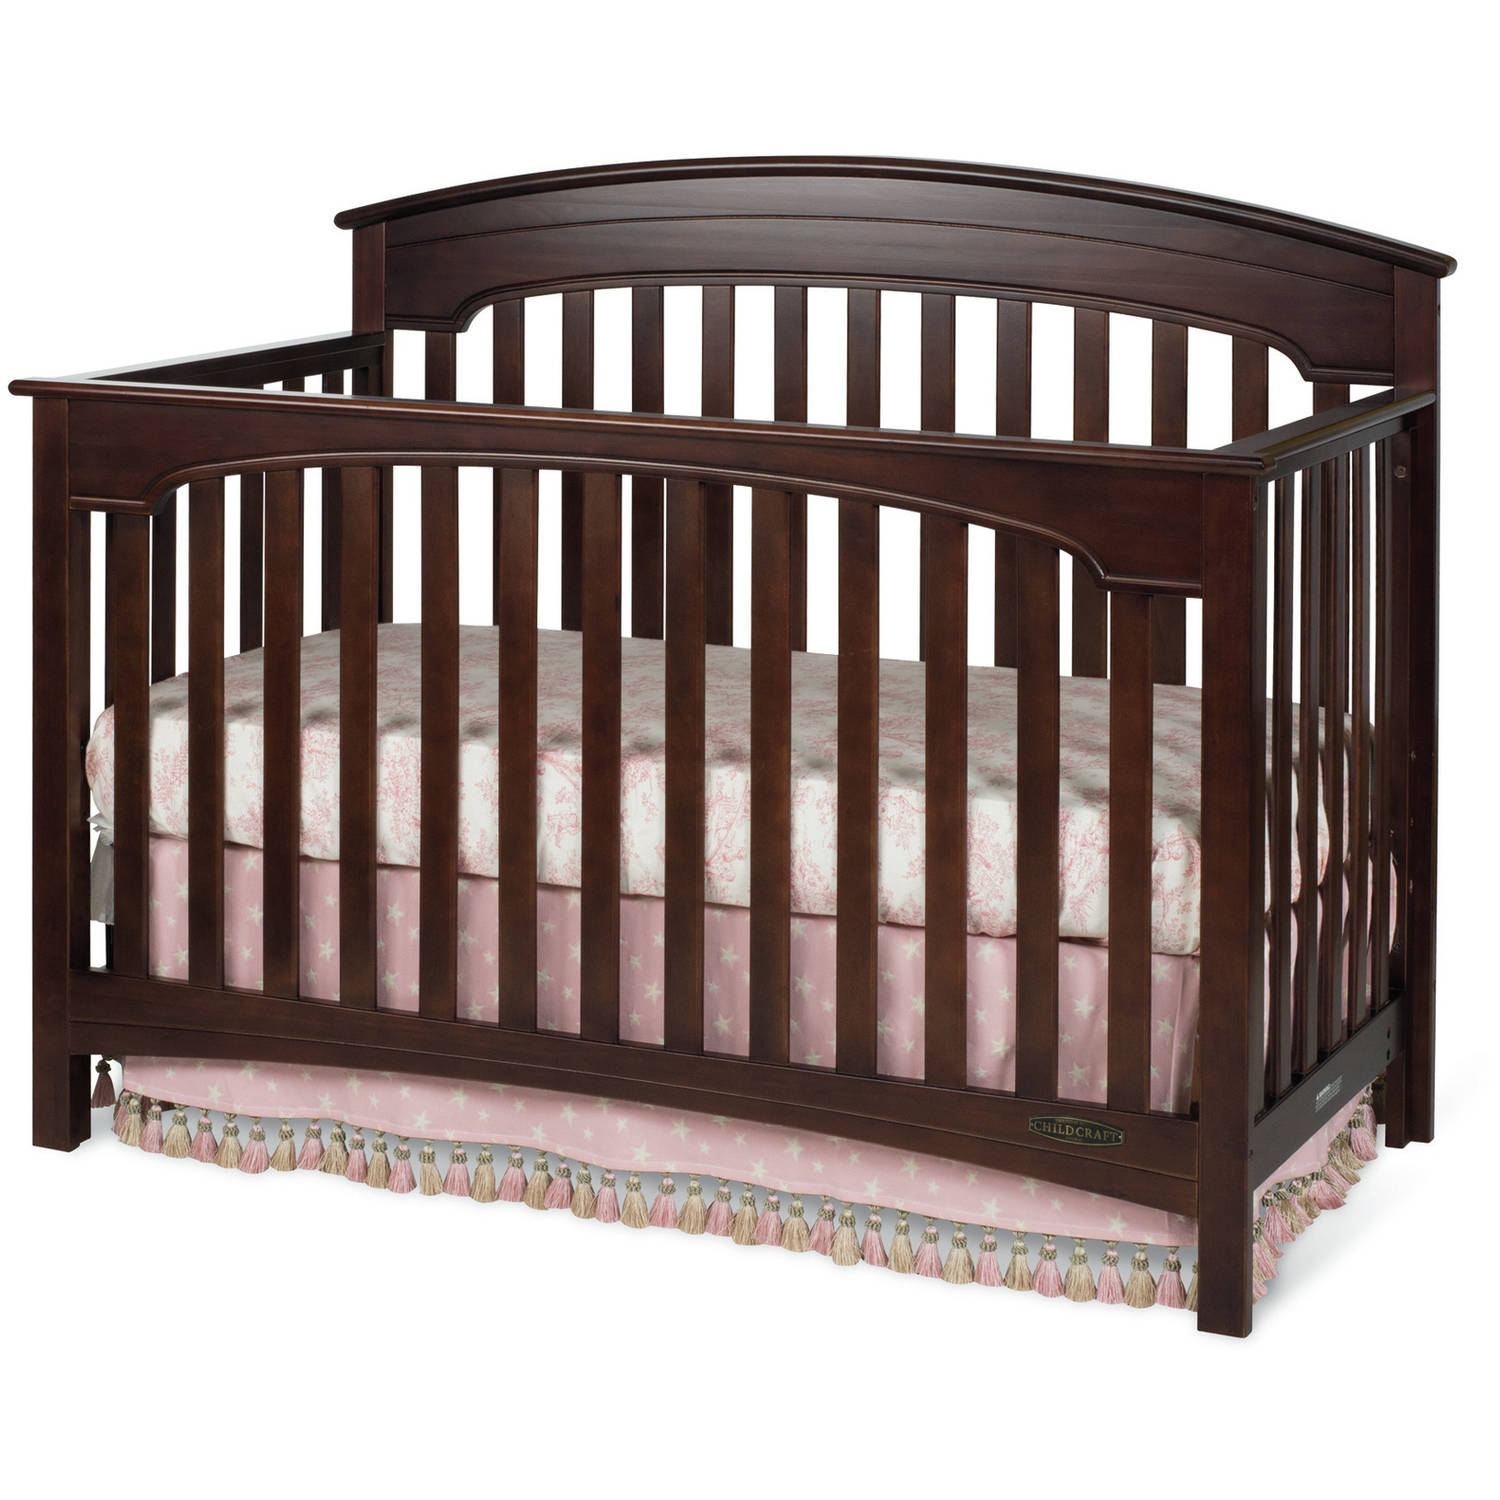 Child Craft Stanford 4-in-1 Convertible Crib, Select Cherry